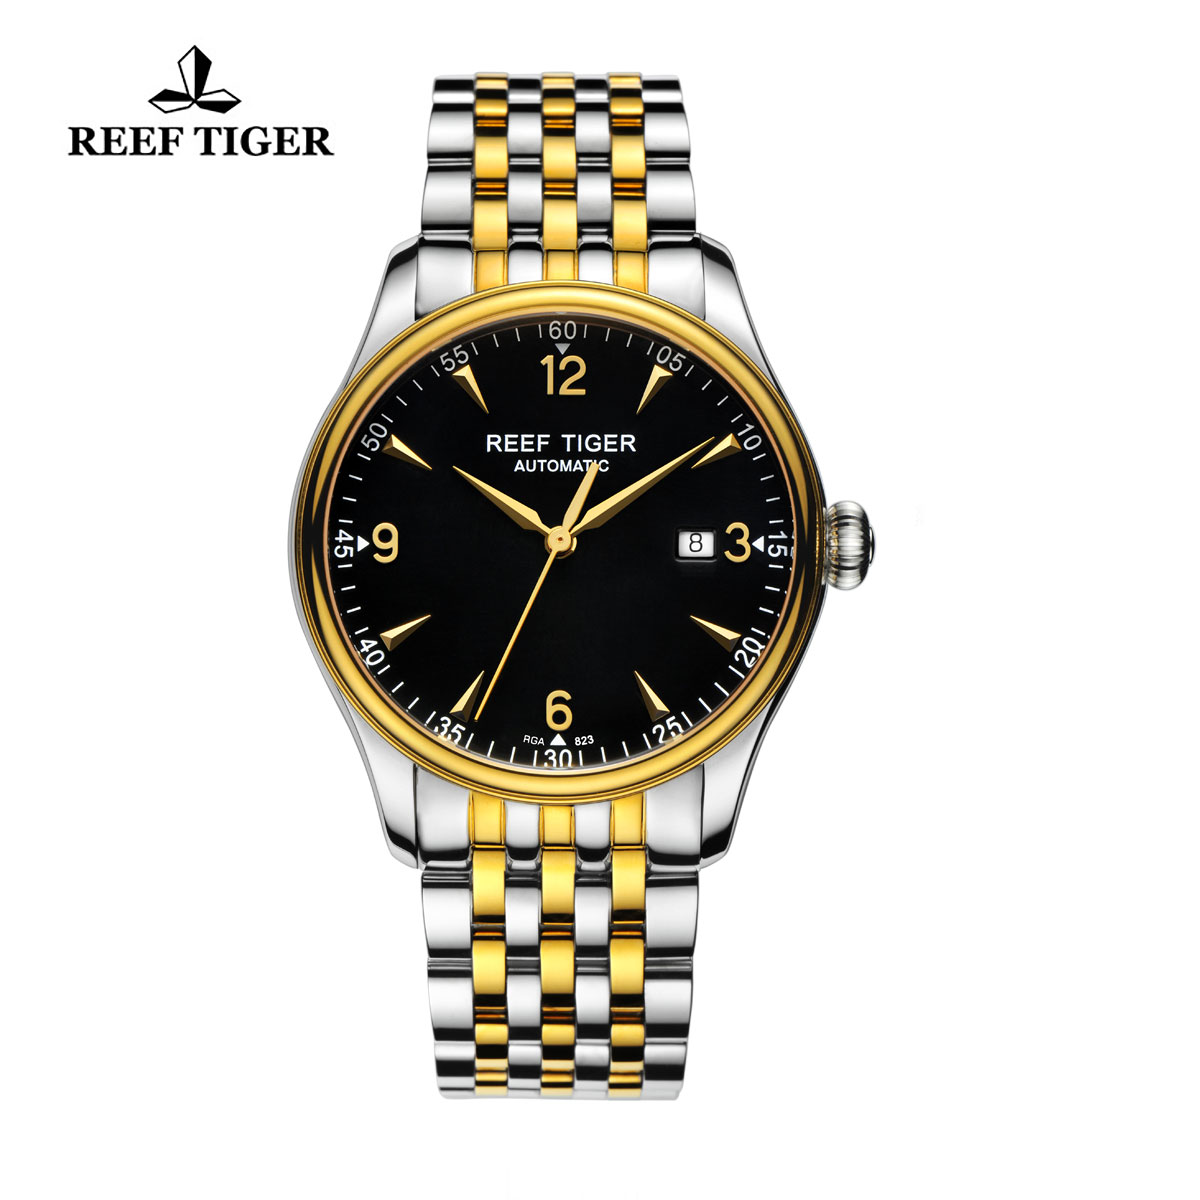 Reef Tiger Heritage Dress Automatic Watch Black Dial Yellow Gold/Steel Case RGA823-TBT